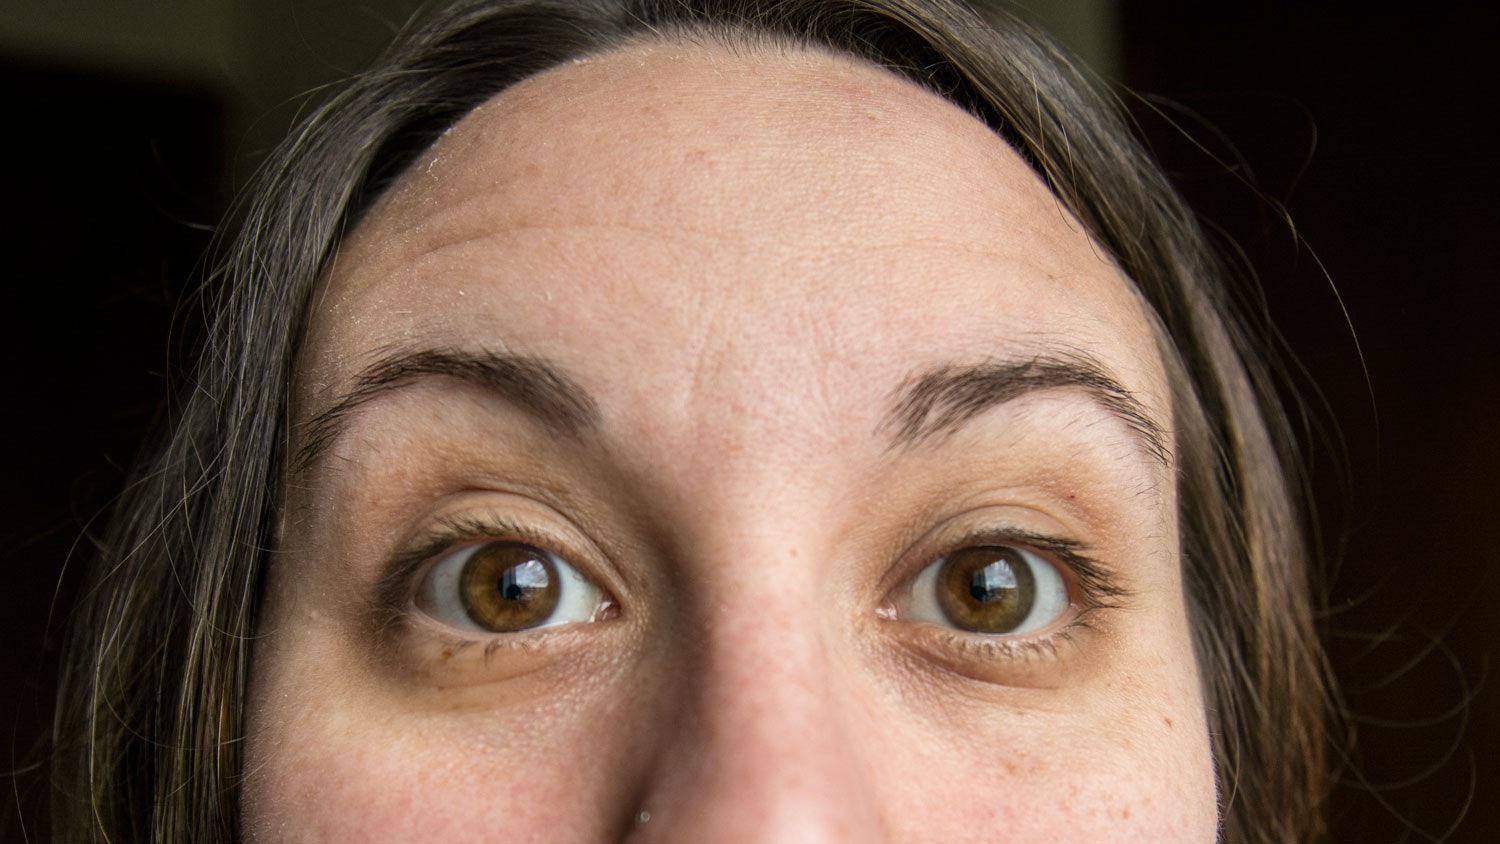 The 9 Emotional Stages Of Getting Your Eyebrows Threaded For The